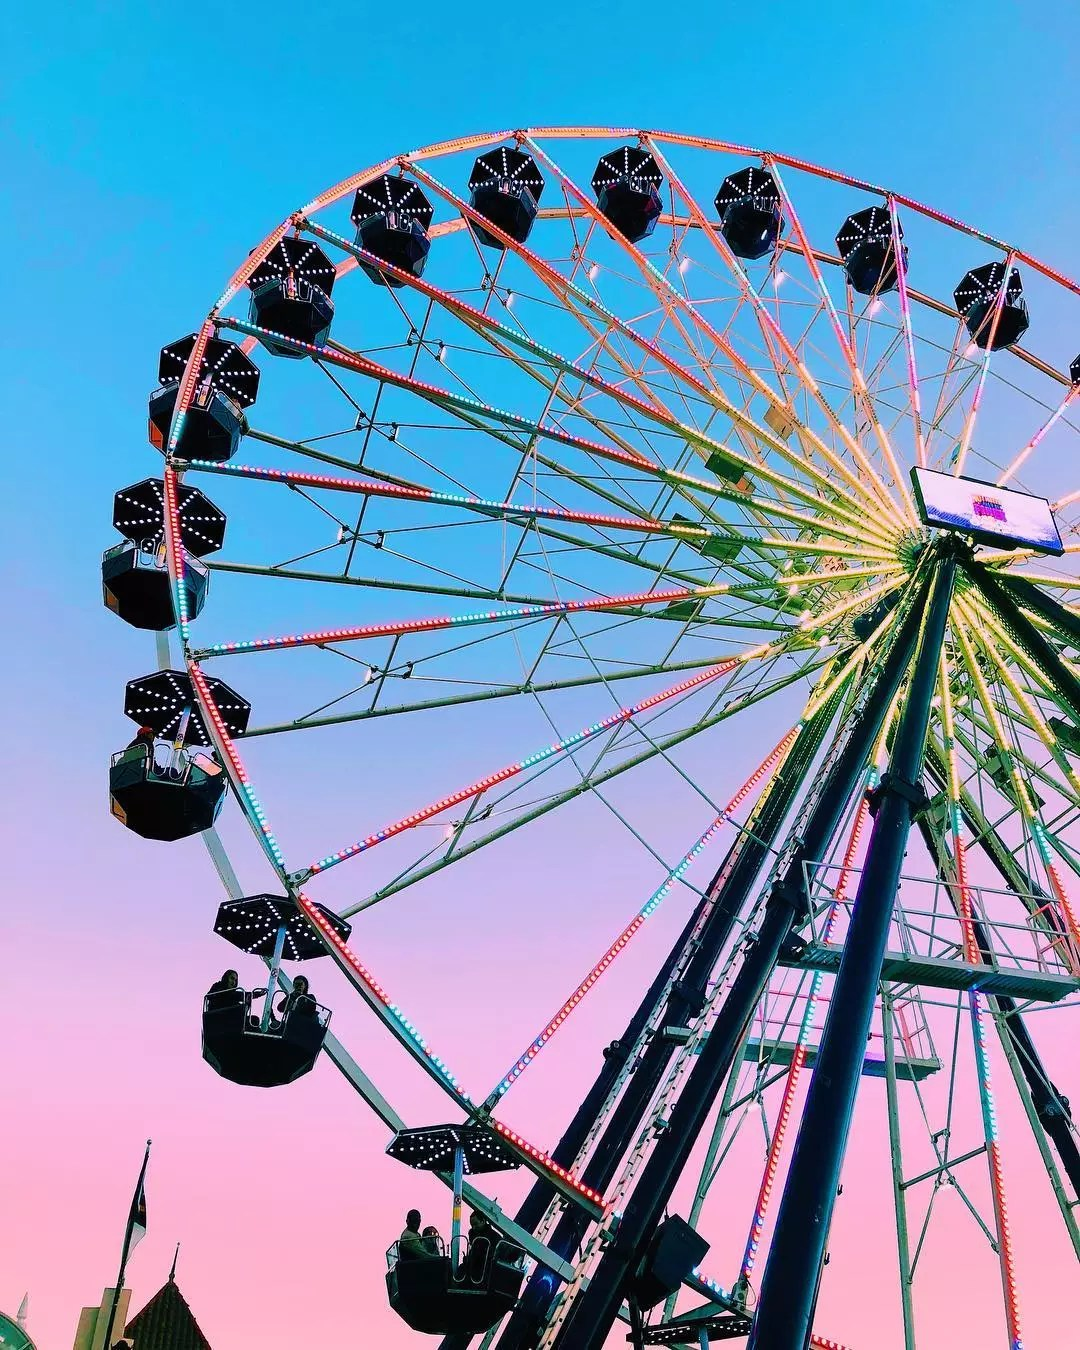 View from under large ferris wheel at dusk at North Carolina State Fair. Photo by Instagram user @sophienelise